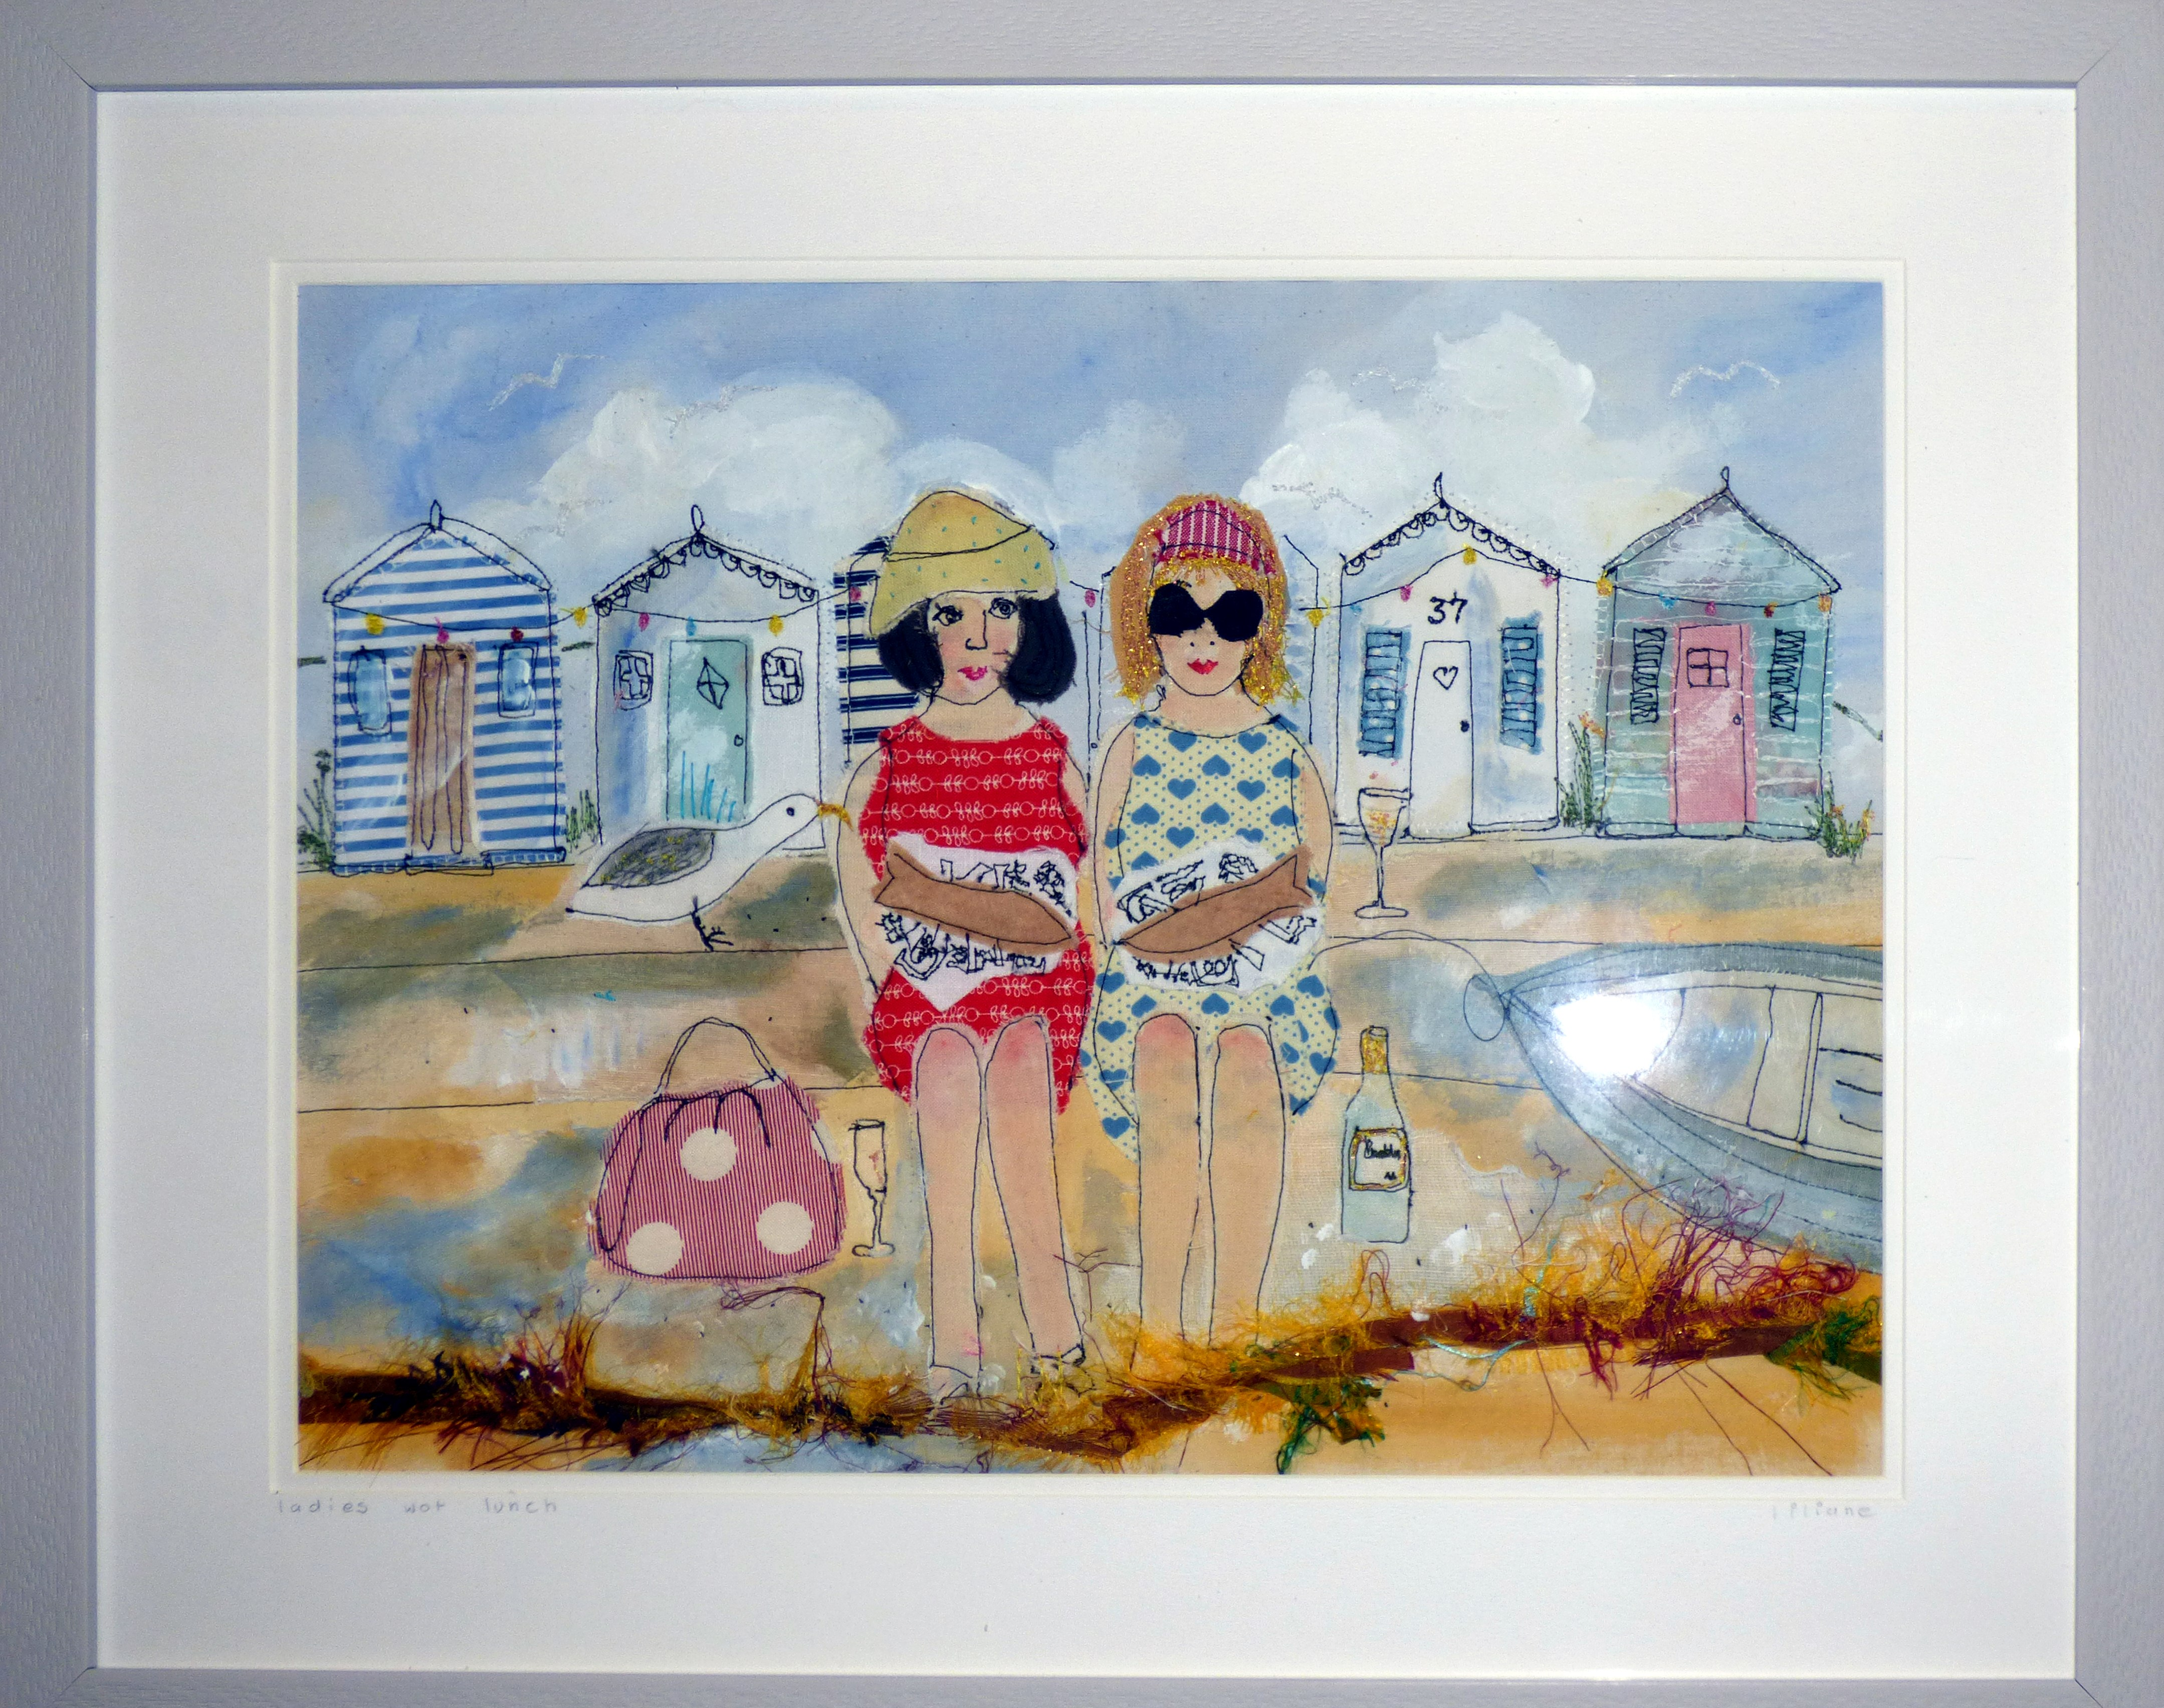 LADIES WHAT LUNCH by Liliane Taylor, stitched picture, Ten Plus @ The Atkinson, 2018